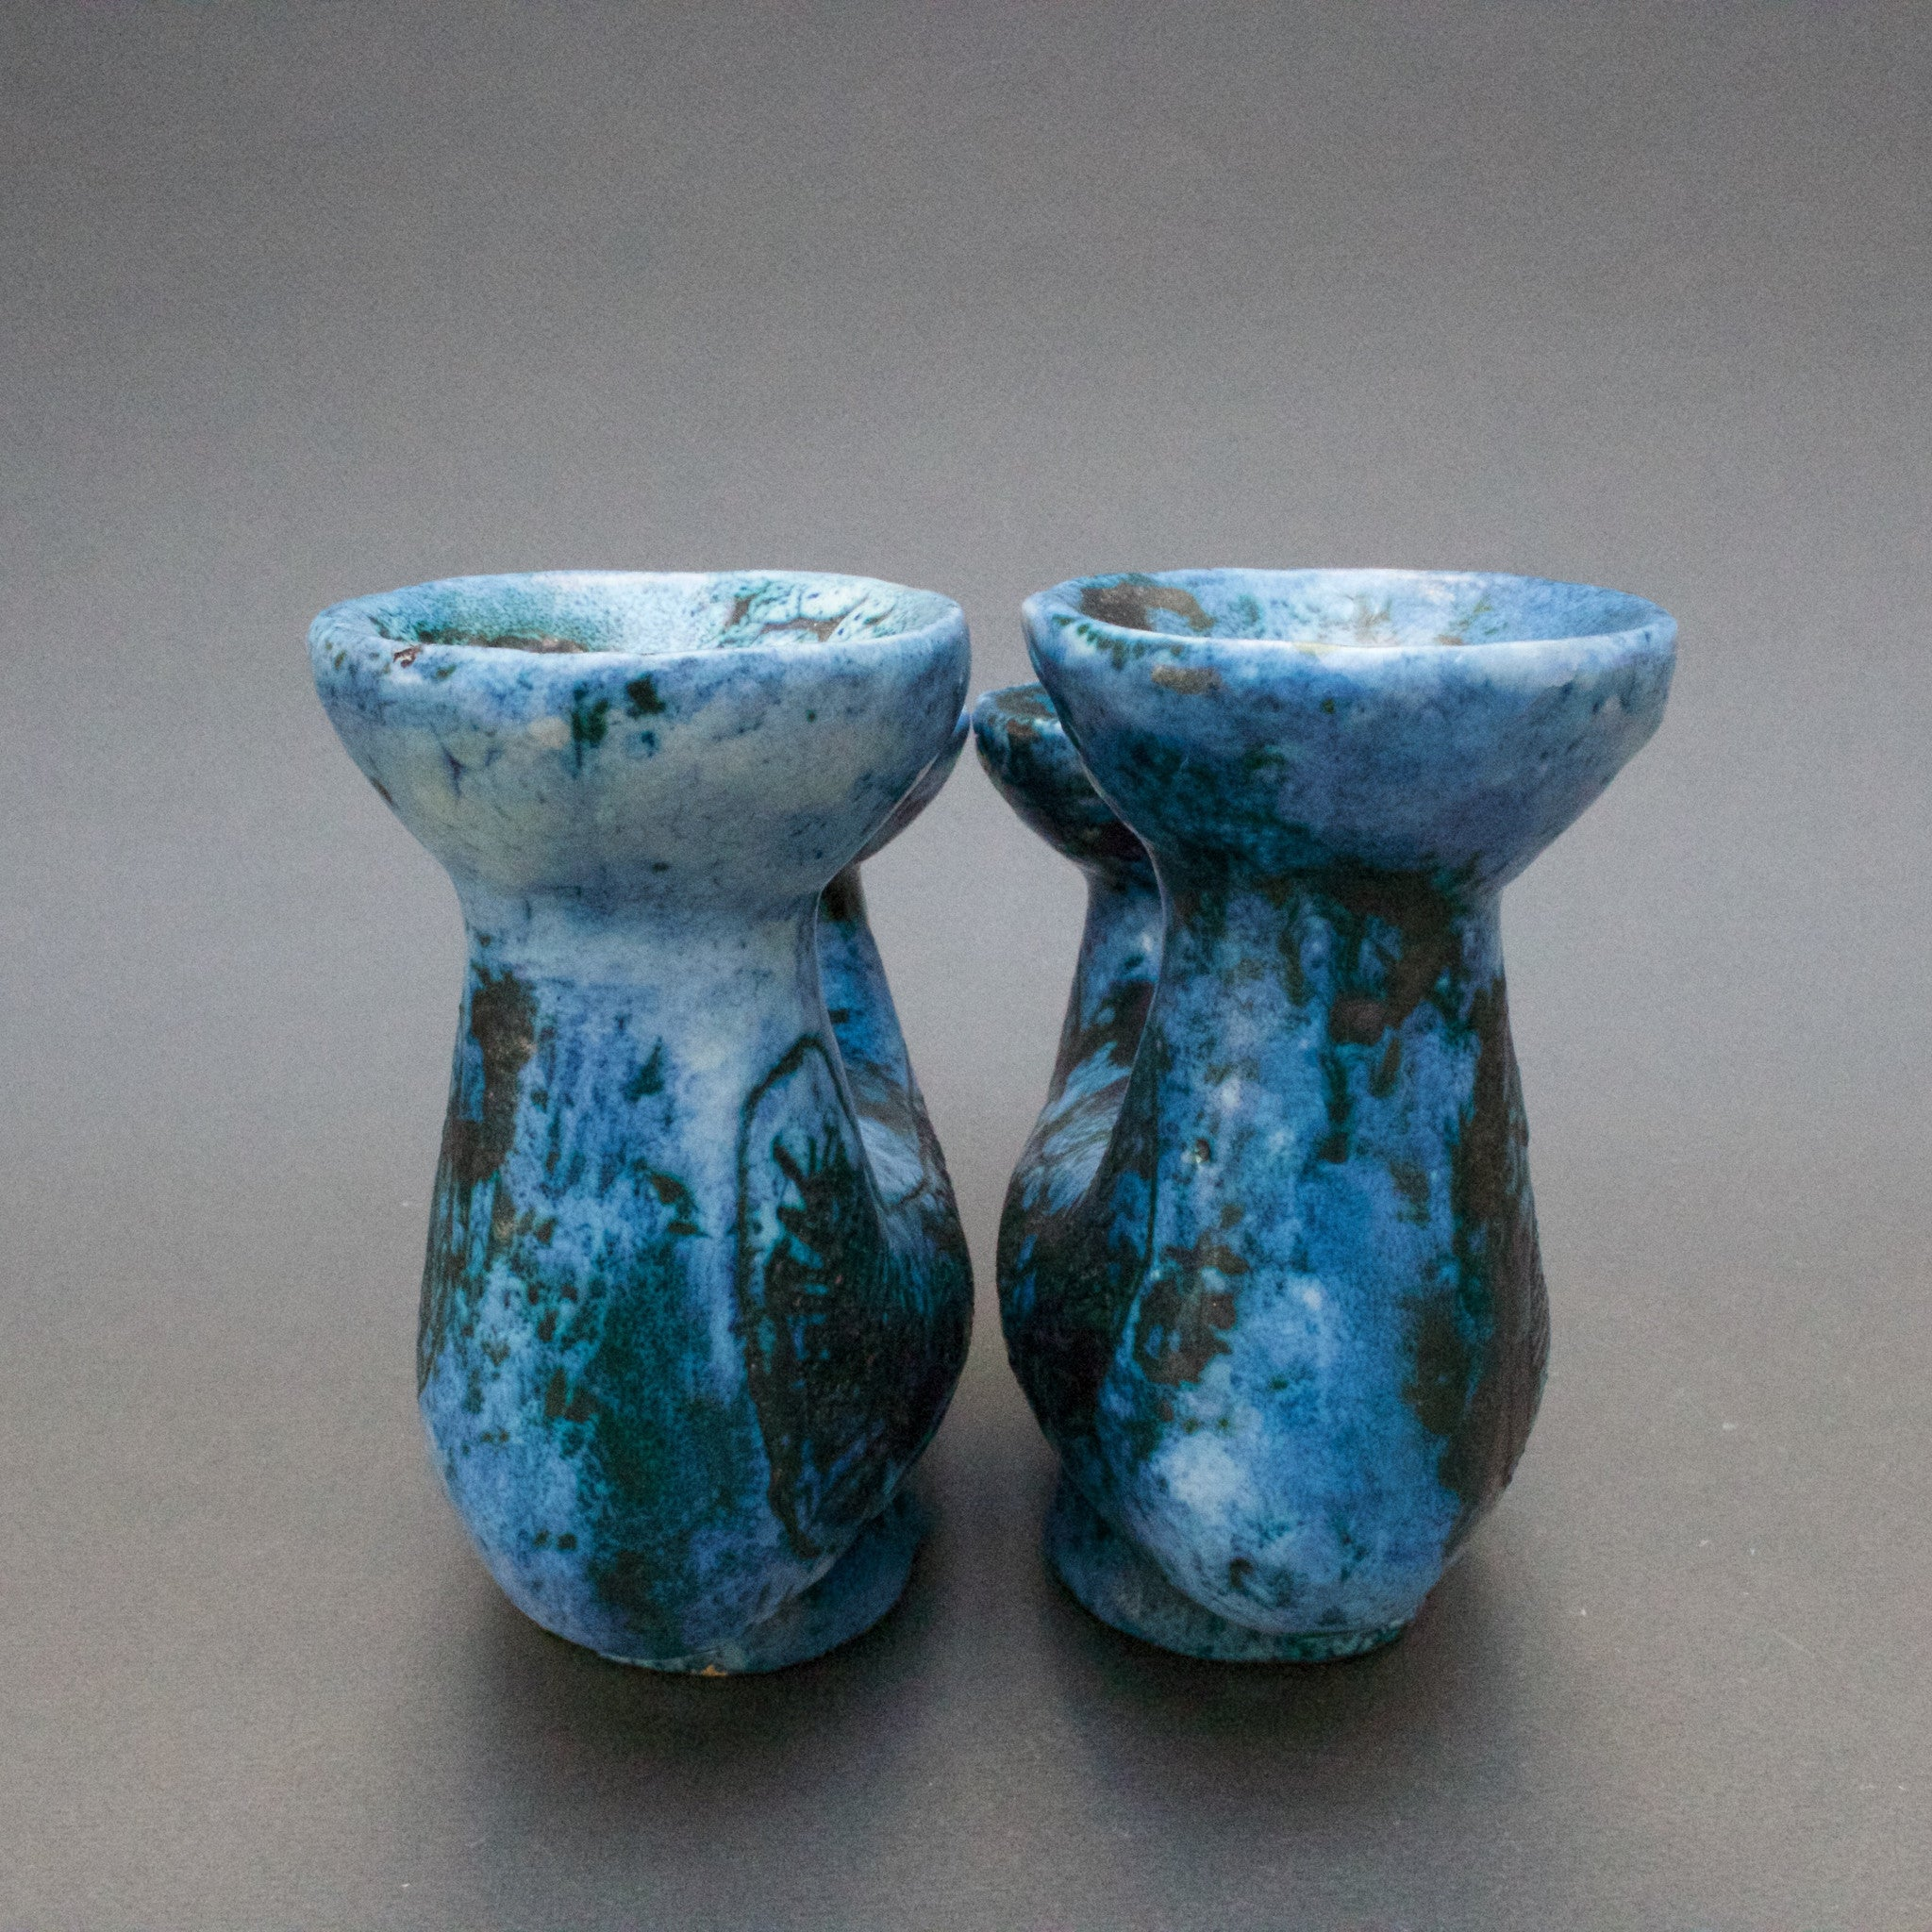 Pair of Candle Holders by Jacques Blin (c. 1950s)